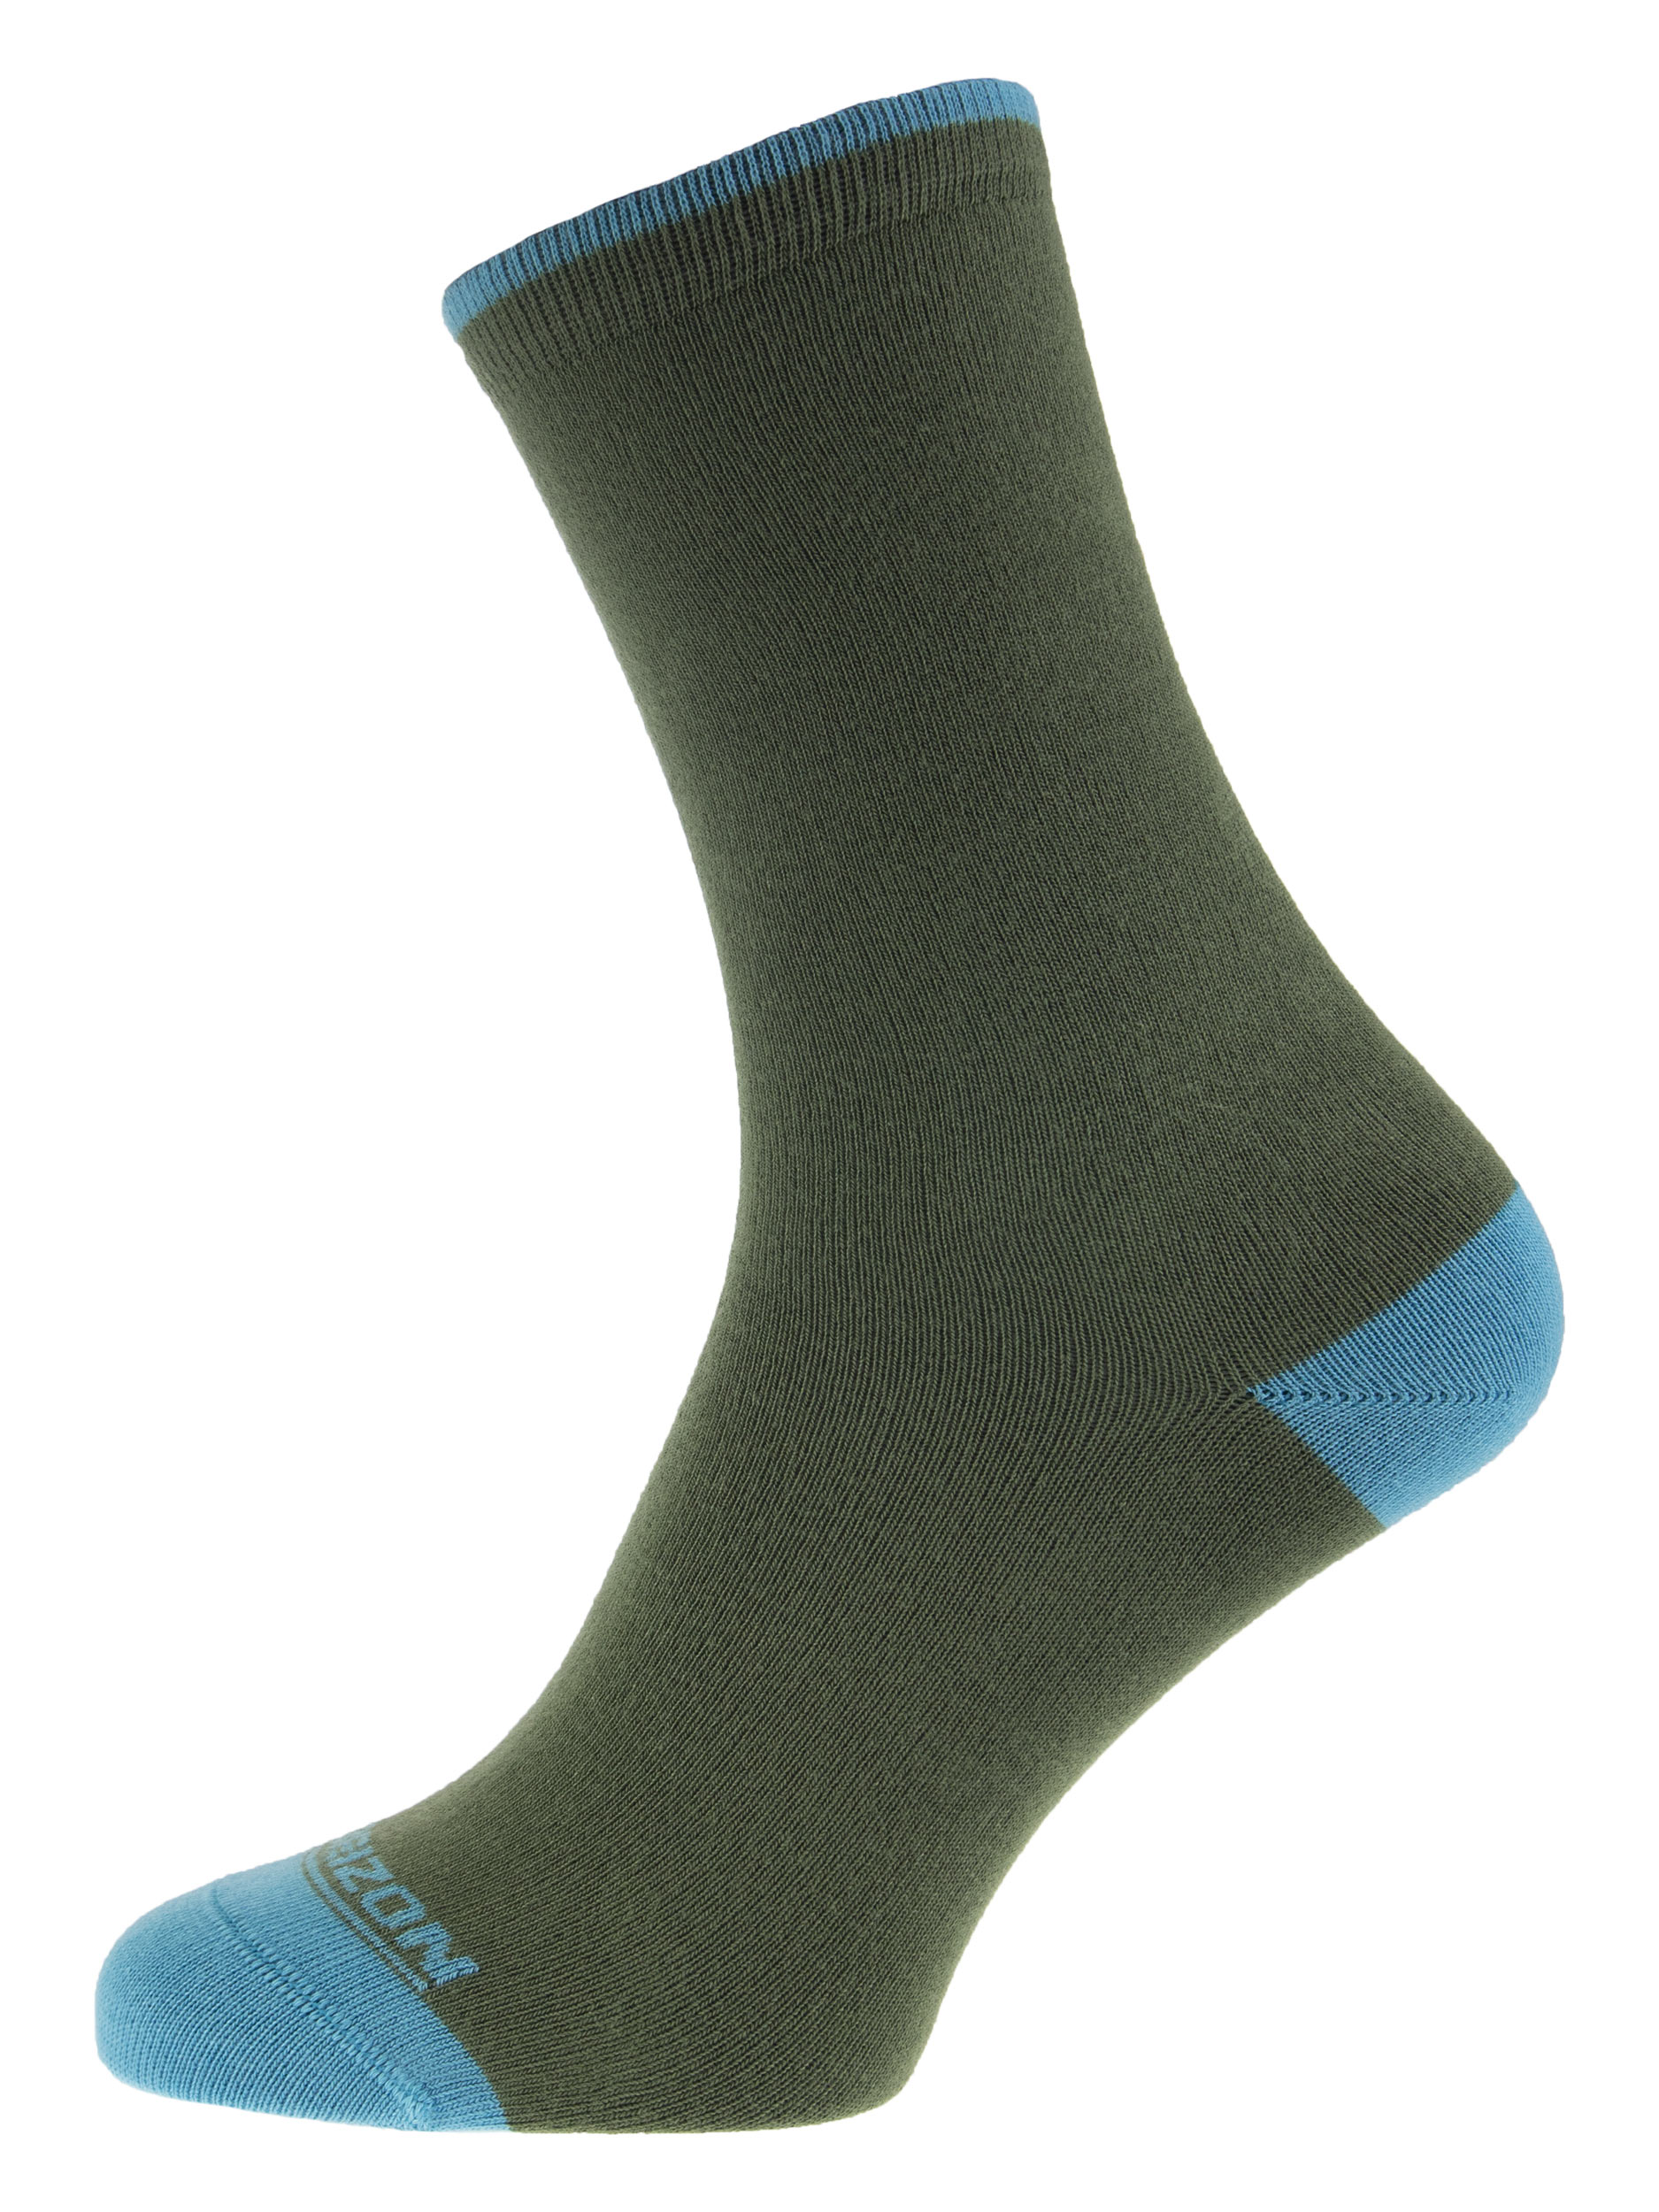 Leisure Bamboo Womens Plain Socks Olive Sky